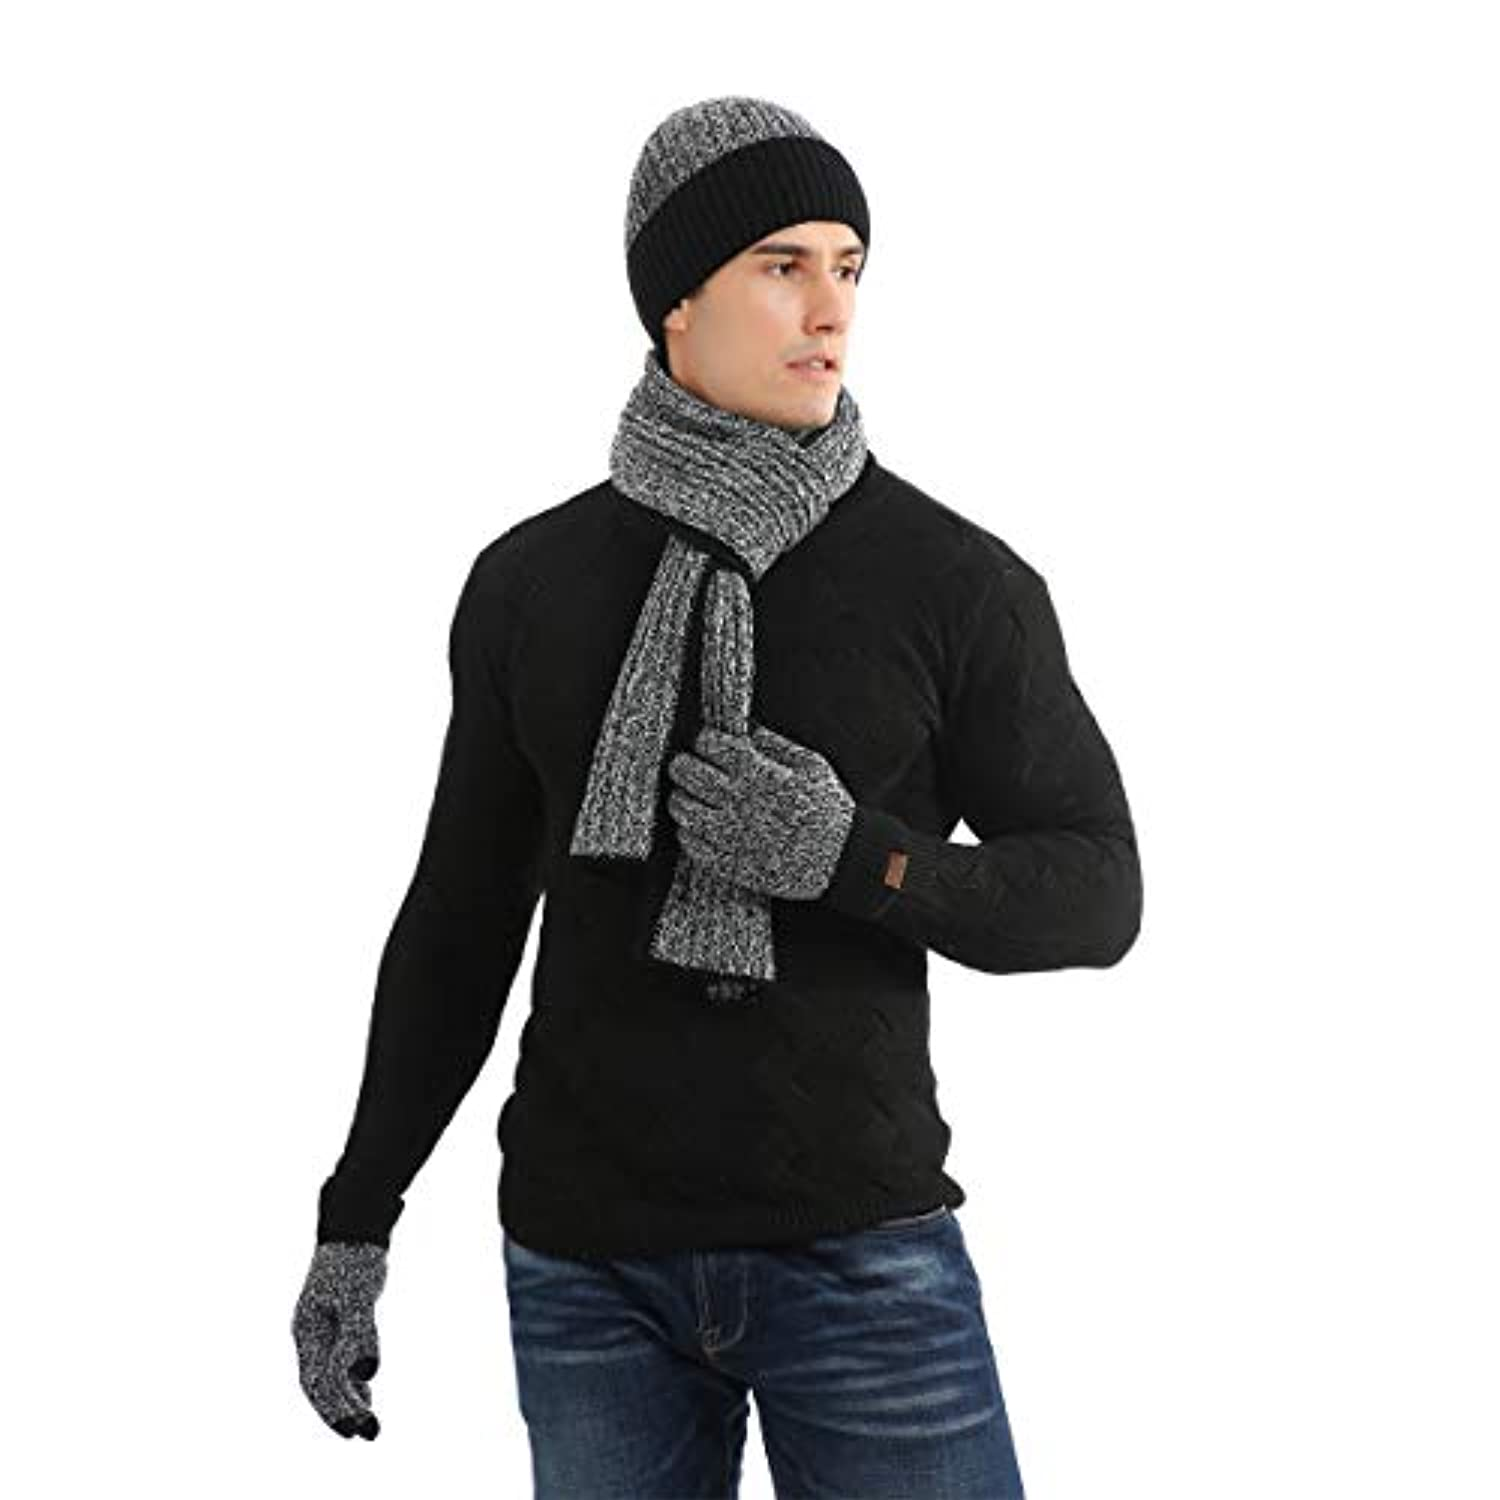 Classier: Buy KEESON KEESON 3 Pieces Winter Beanie Hat Scarf Touch Screen Gloves Knitted Cap Set Unisex for Men Women Two-color design